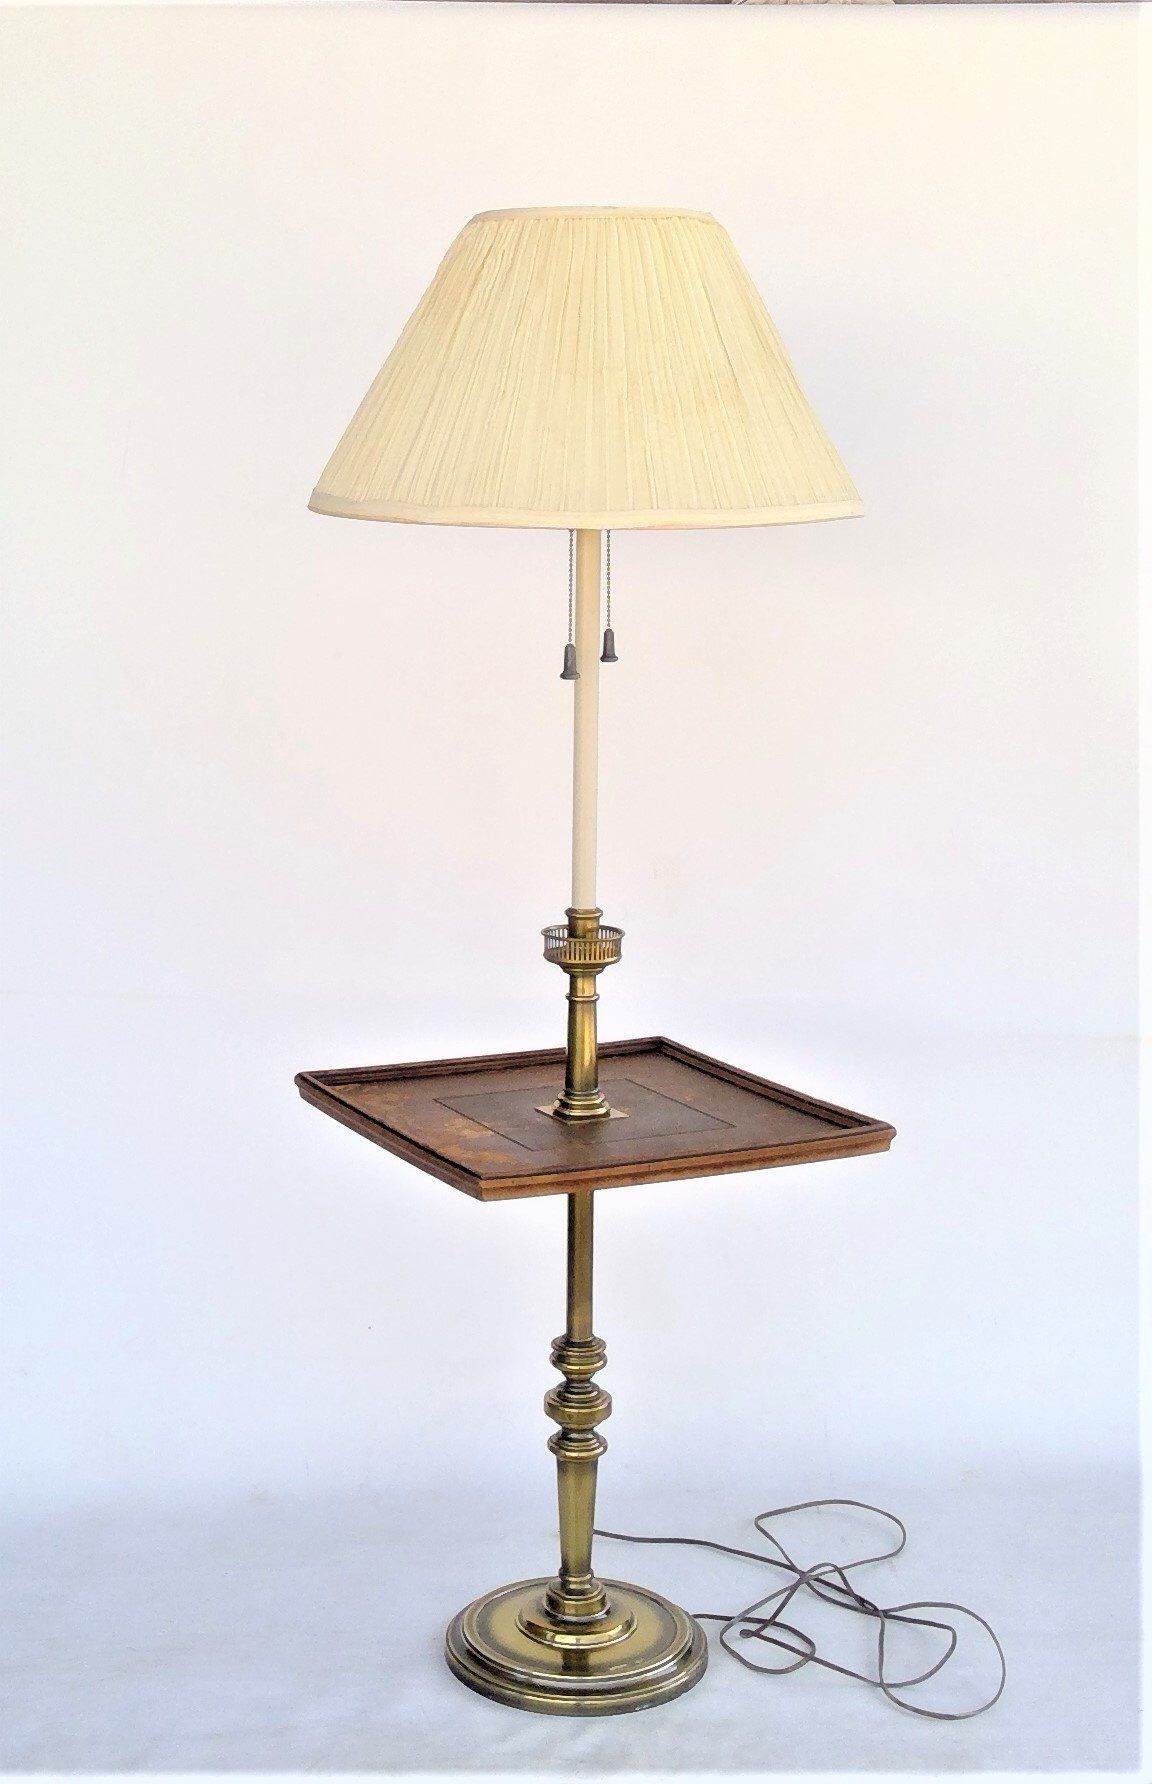 Http Images1 1stdibs Com Archivese 1stdibs 102711 Monumentsf Lb1027 5 X Jpg Lamp Vintage Lamps Stiffel